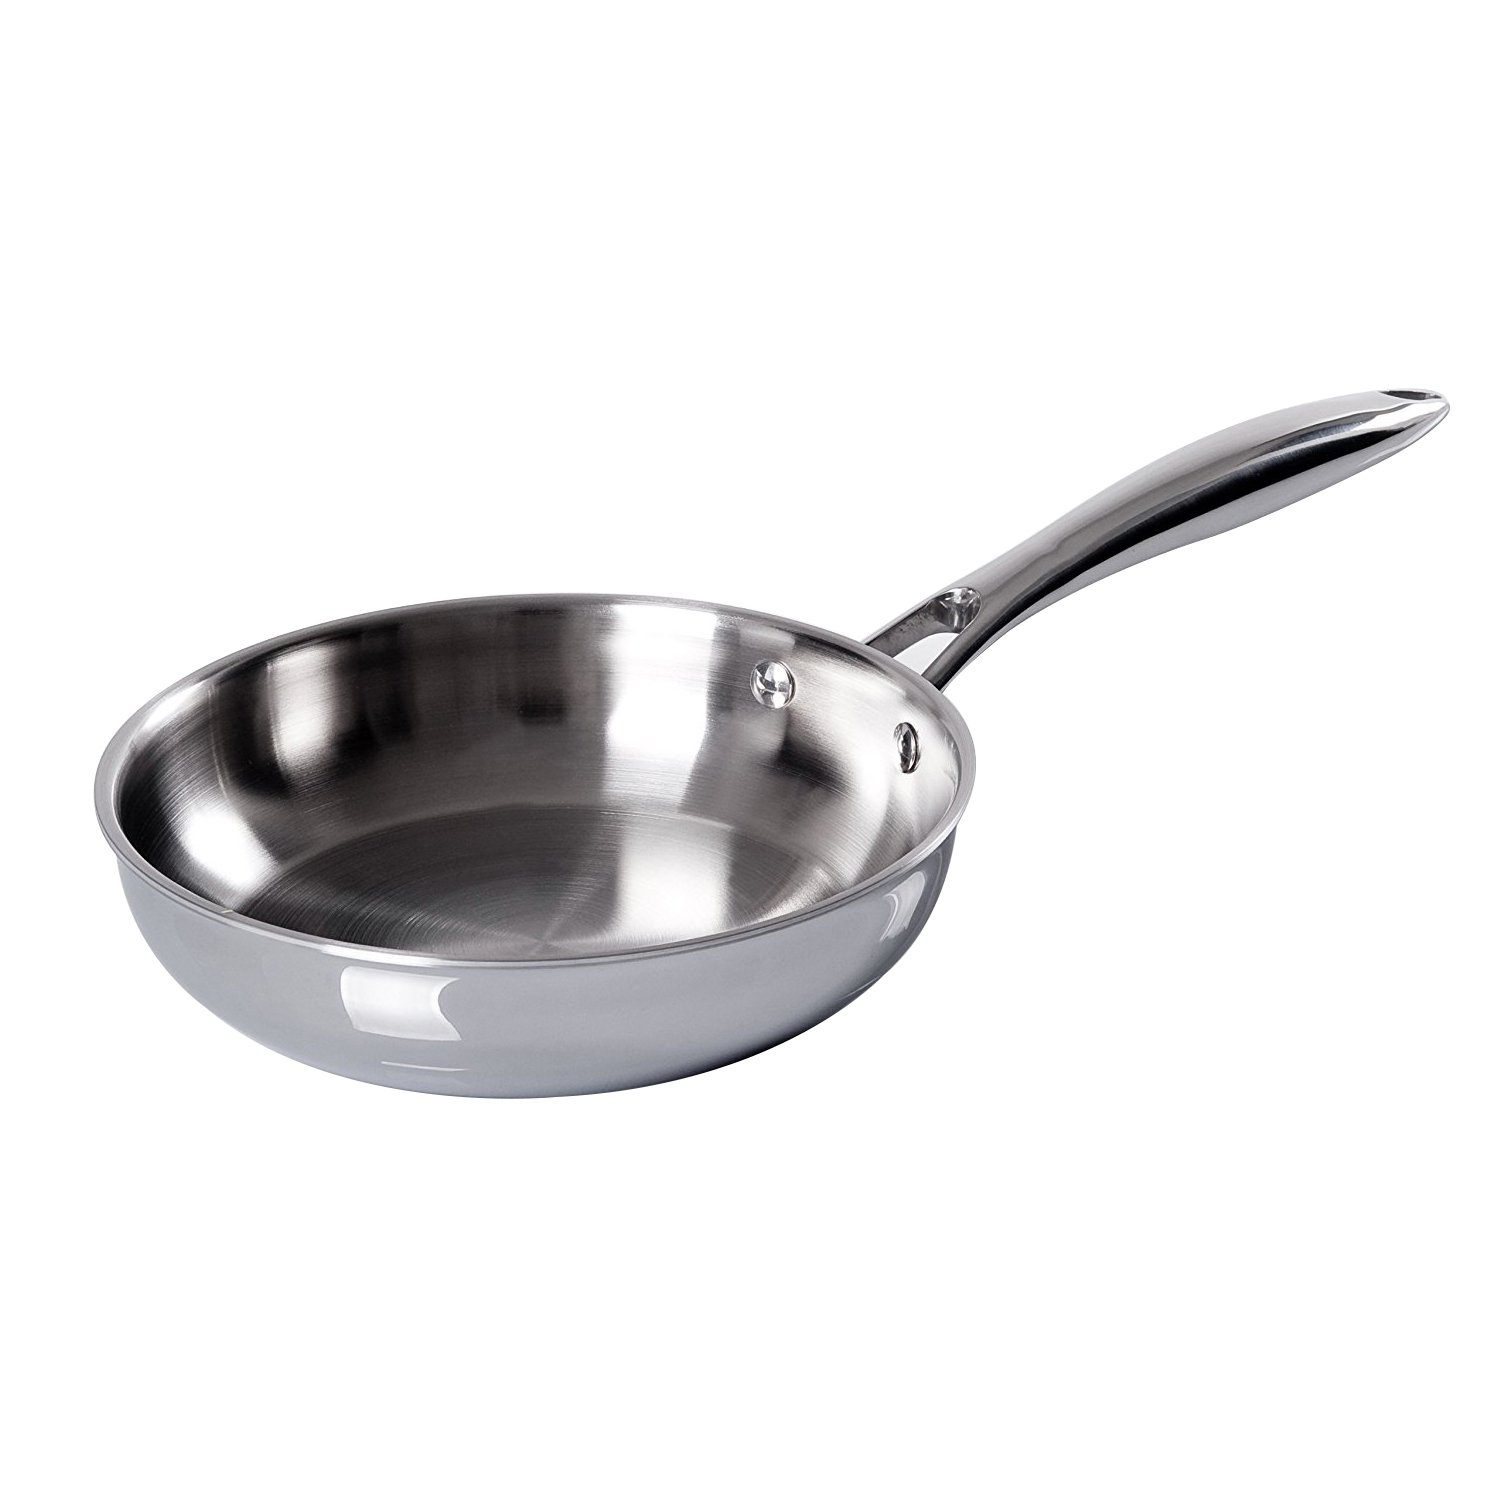 Duxtop Professional Stainless-steel Induction Ready Cookware Impact-bonded Technology (8'' Fry Pan)